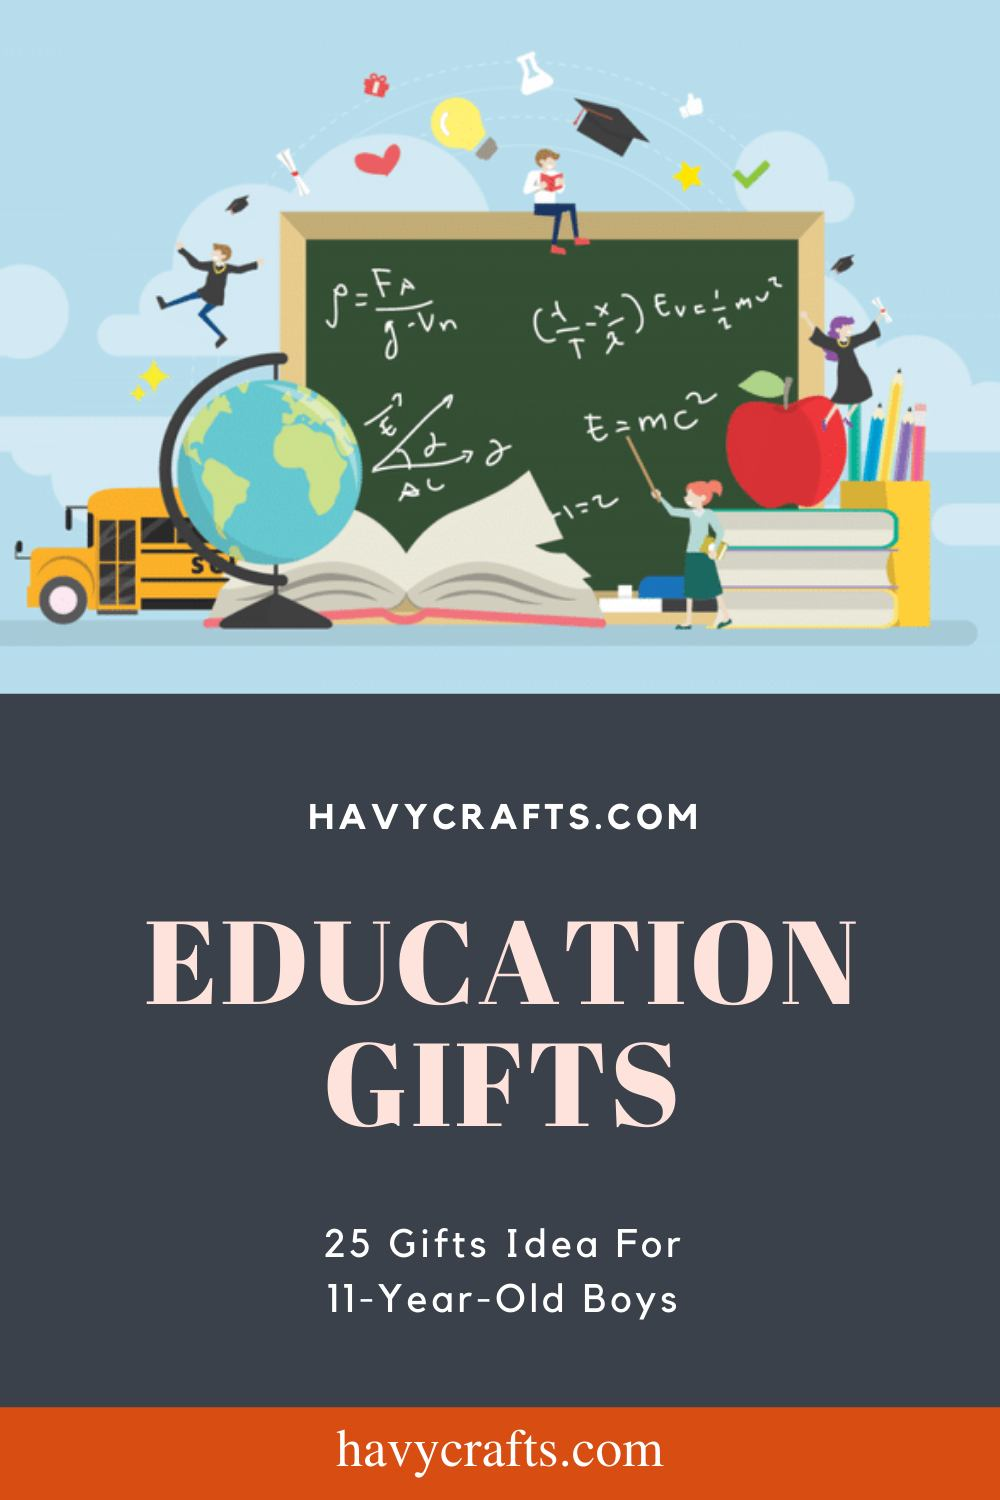 Best educational gifts for 11 year old boys